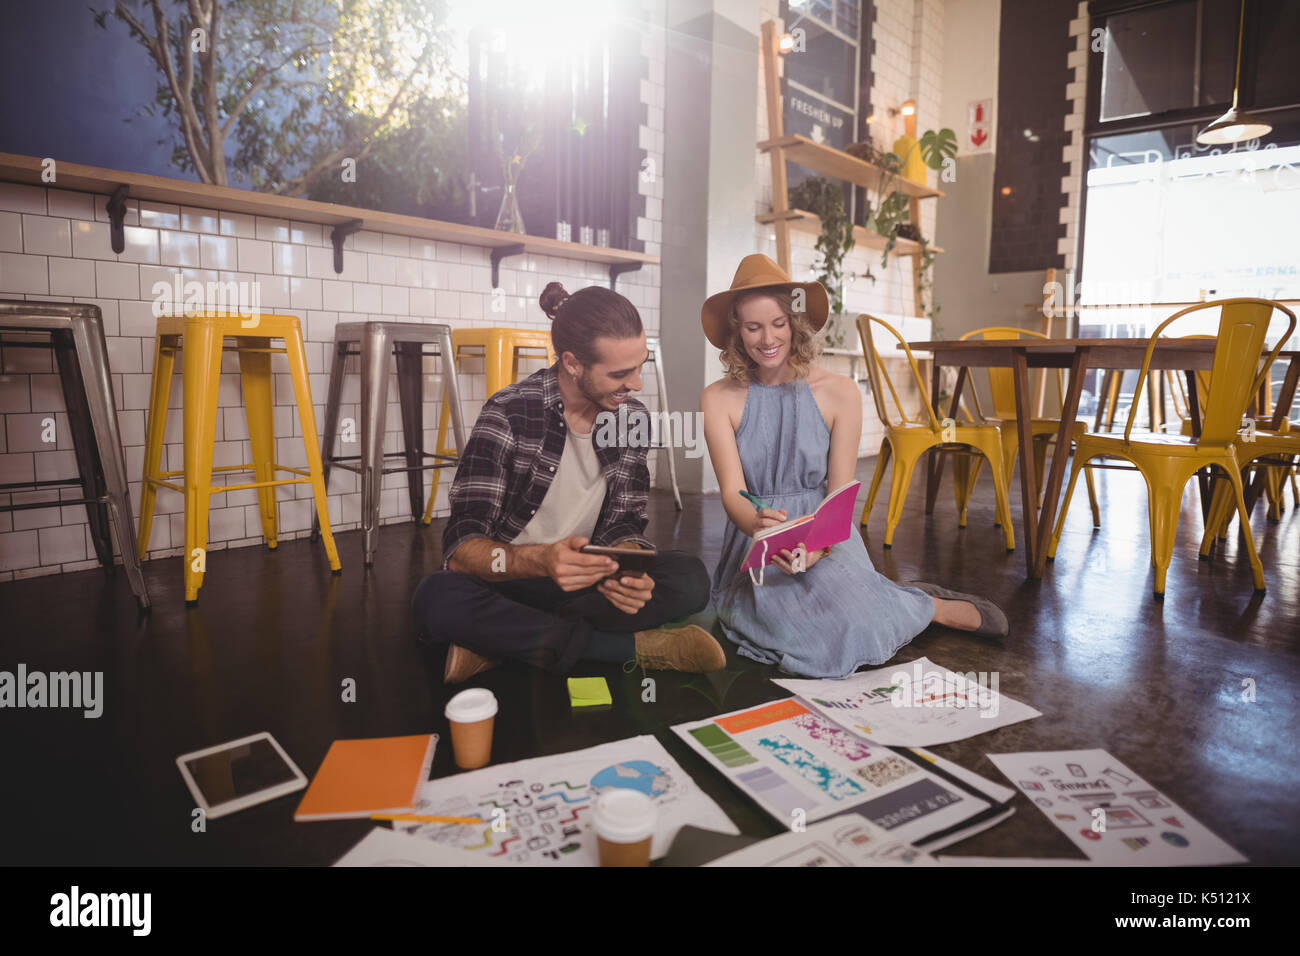 Young female professional showing dairy to male colleague sitting on floor at coffee shop - Stock Image